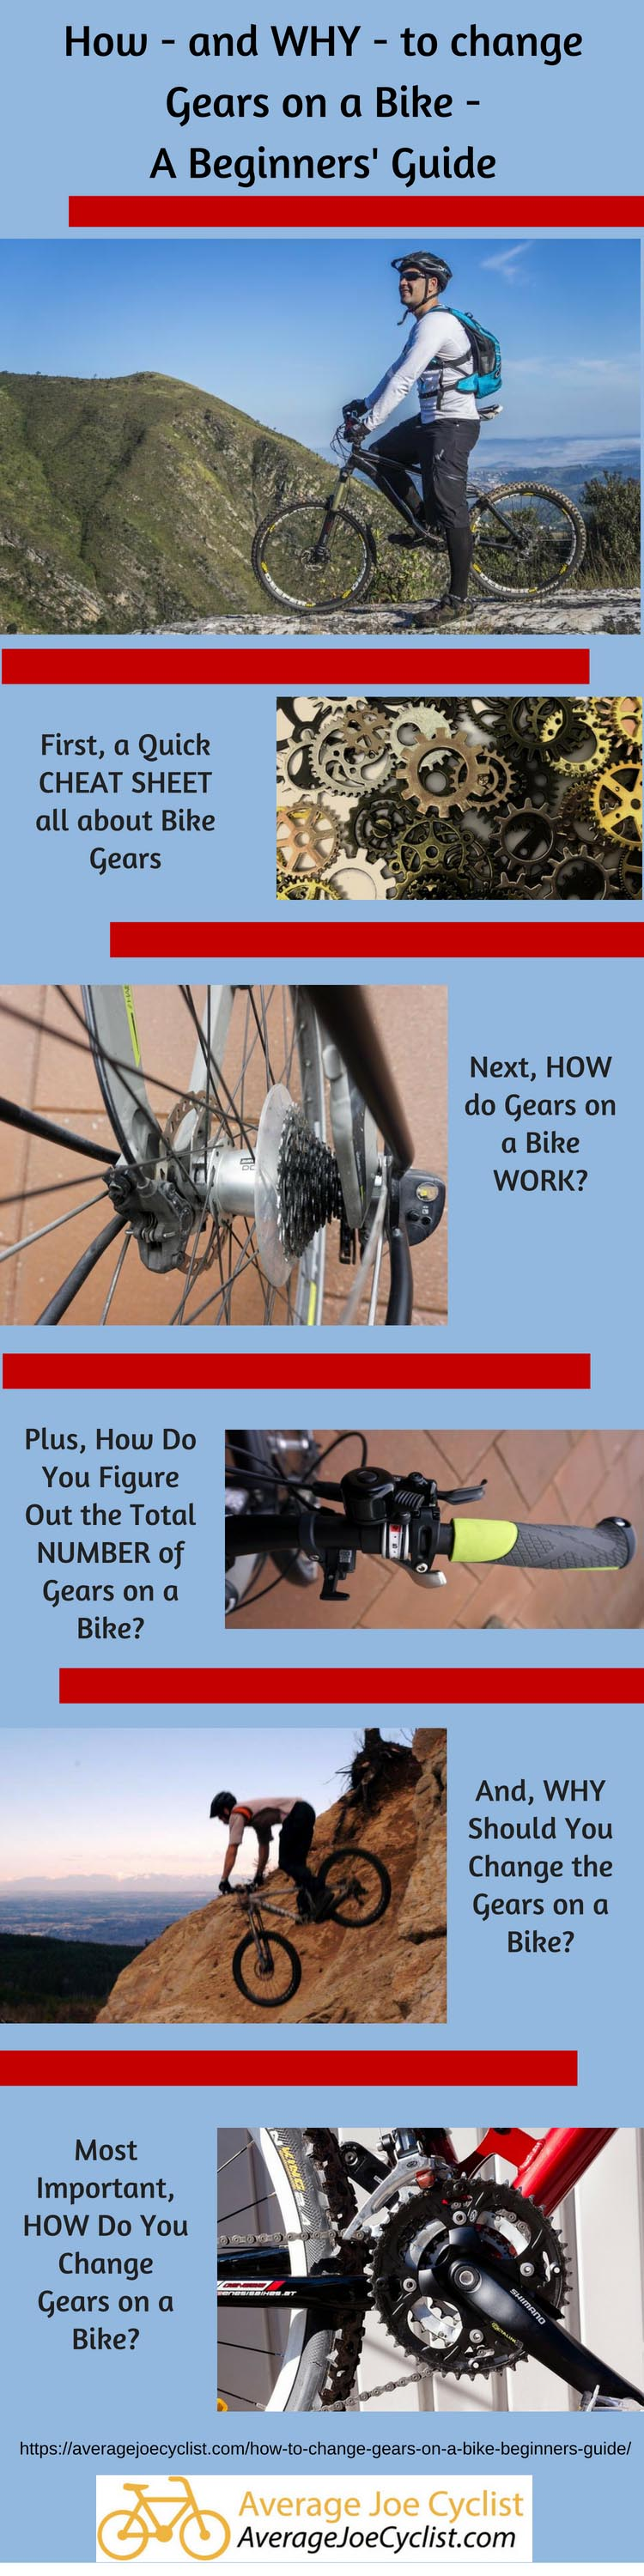 How to Change Gears on a Bike - Beginners Guide